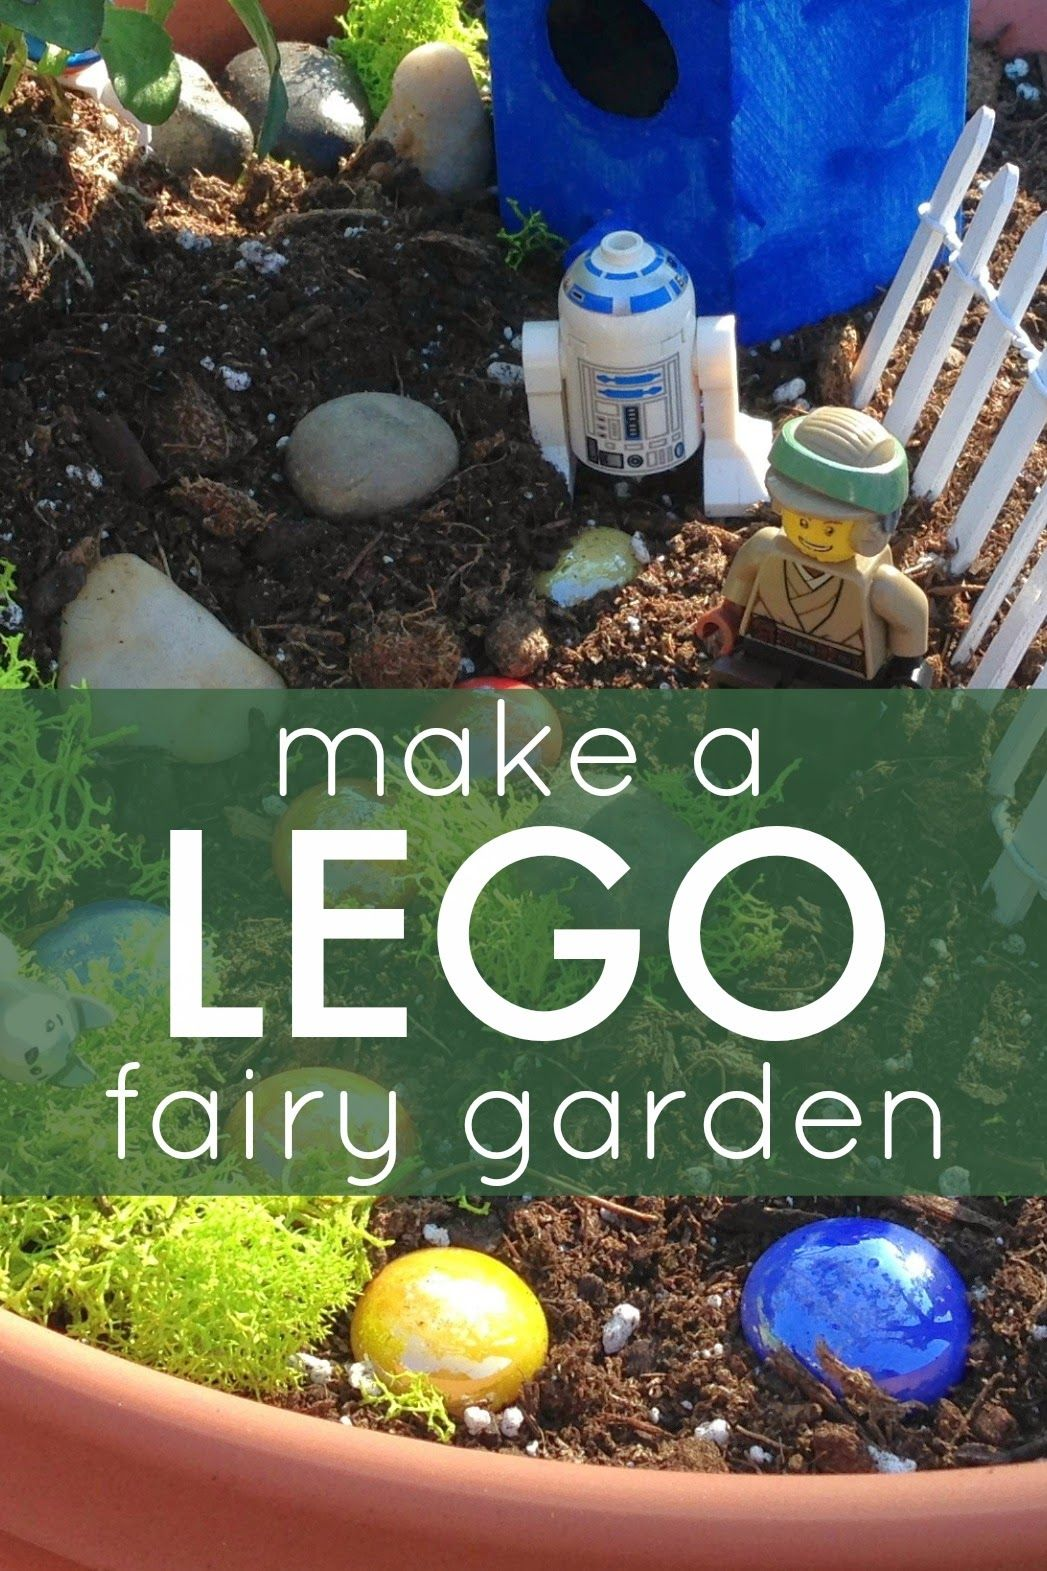 Swish Garden Ideas Diy Fairy Garden Kids Easy Lego Fairy Garden Kids To Make Kids Diy Fairy Gardens Easy Lego Fairy Garden Kids Gardens garden Diy Fairy Garden For Kids